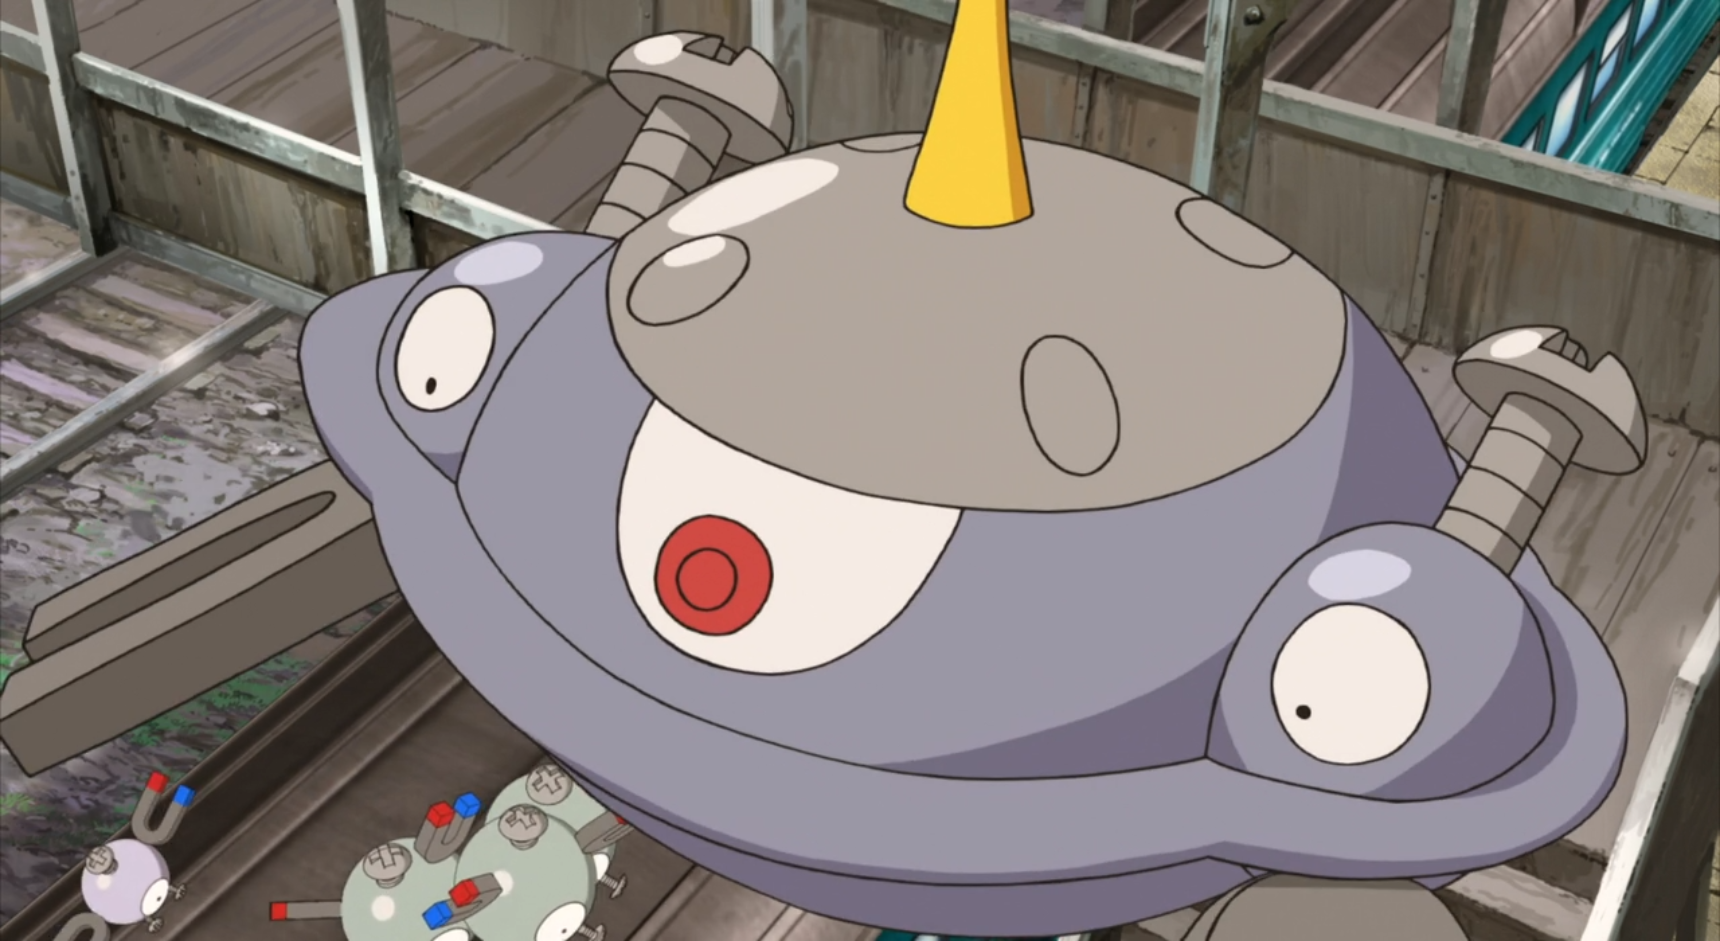 Its job ranges from battling, like any usual trained Pokémon, to more advanced jobs, like leading Zero's Magnemite and Magneton army. Zero is also seen using it as a form of temporary transportation in that he will stand on Magnezone, and it will float him to locations he needs to reach. It was shown to be fast, powerful, durable, and as ruthless as Zero himself in pursuing Shaymin. After Zero was arrested, Magnezone and the Magnemite army took up residence on the Megarig's wreck in Gracidea.